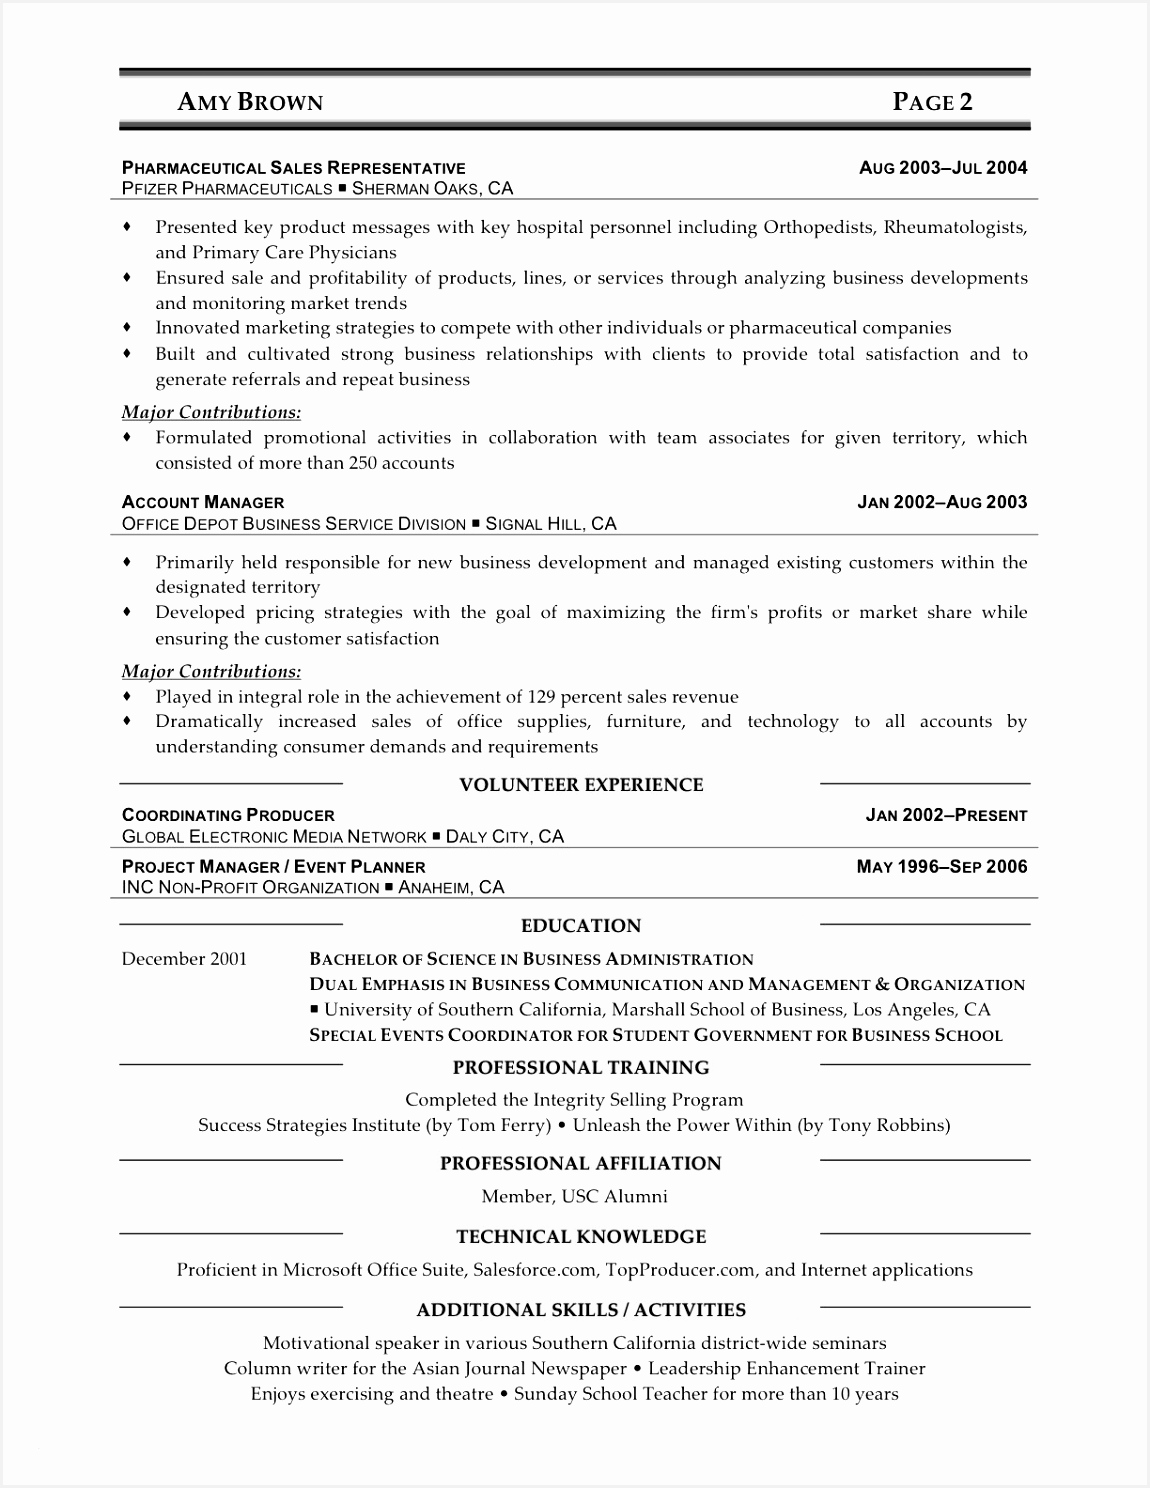 Microsoft Trainer Sample Resume B1ckt Lovely Sample Resume for Nurses Archives Margorochelle Of Microsoft Trainer Sample Resume Bvgrh Unique Sample Pitch for Resume Popular Good Examples Resumes Inspirational